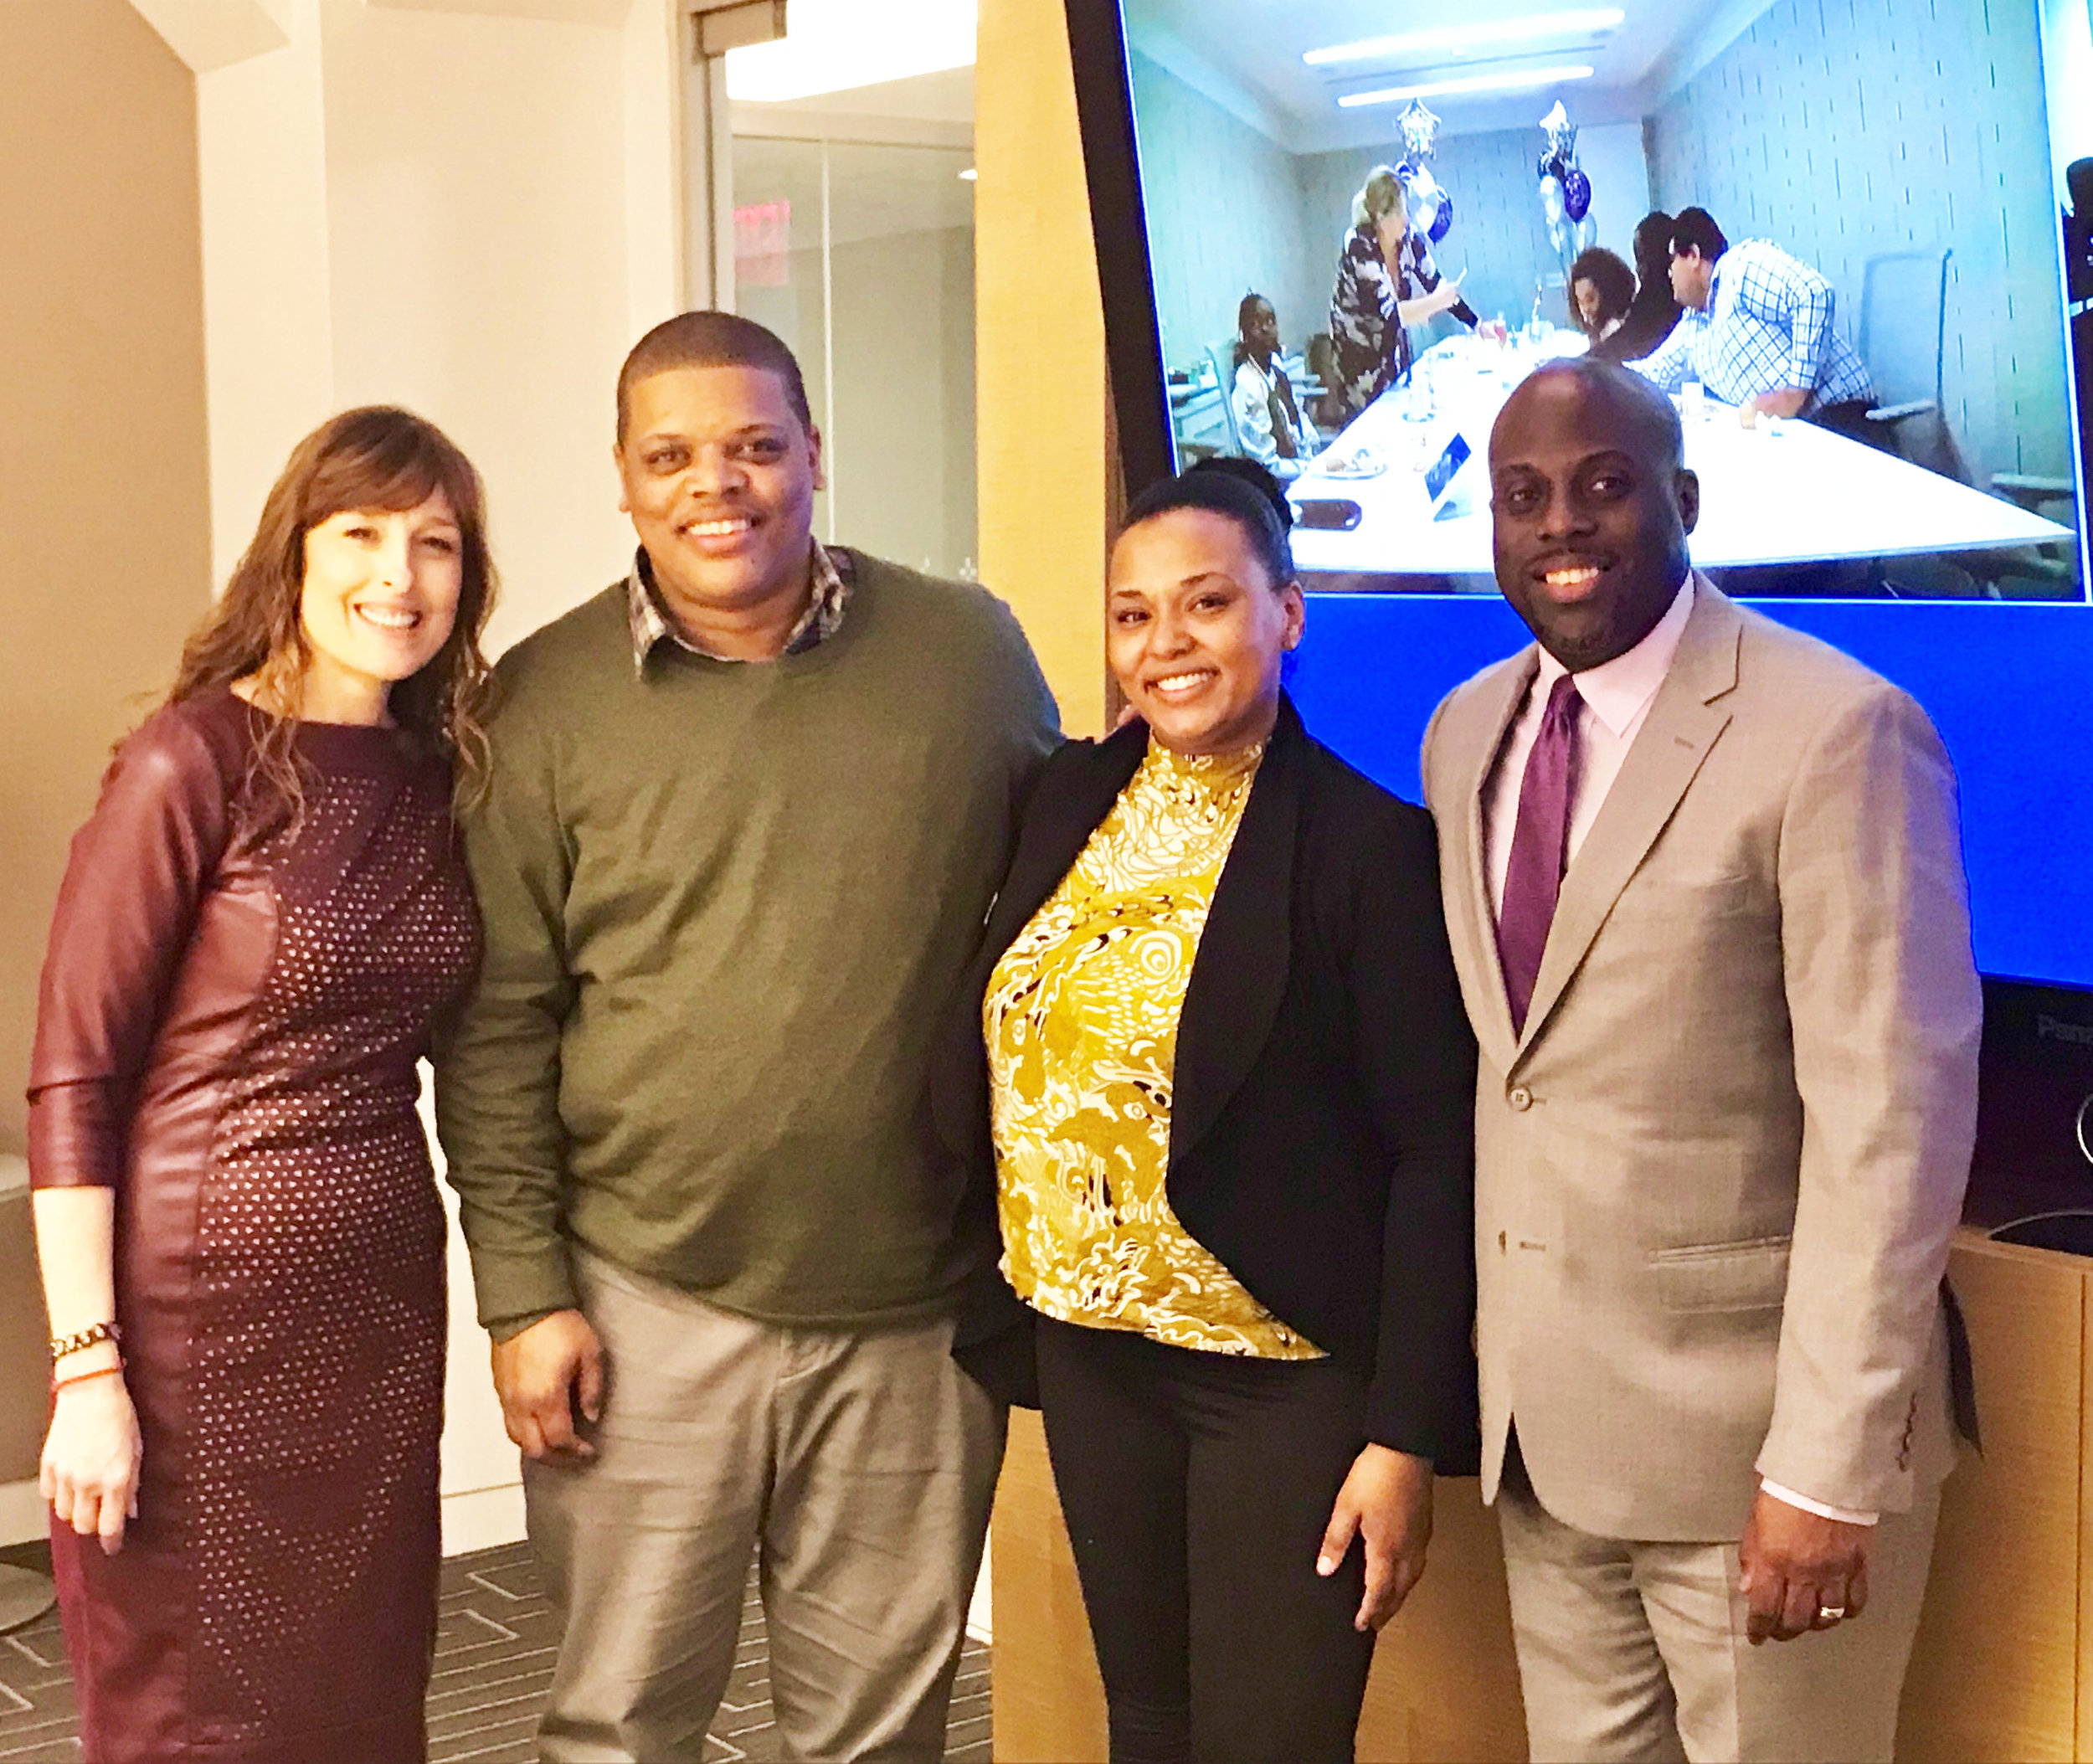 (L to R): Denise Strong, Antoine Galloway, Sophia Kirby, & Omar Roberts